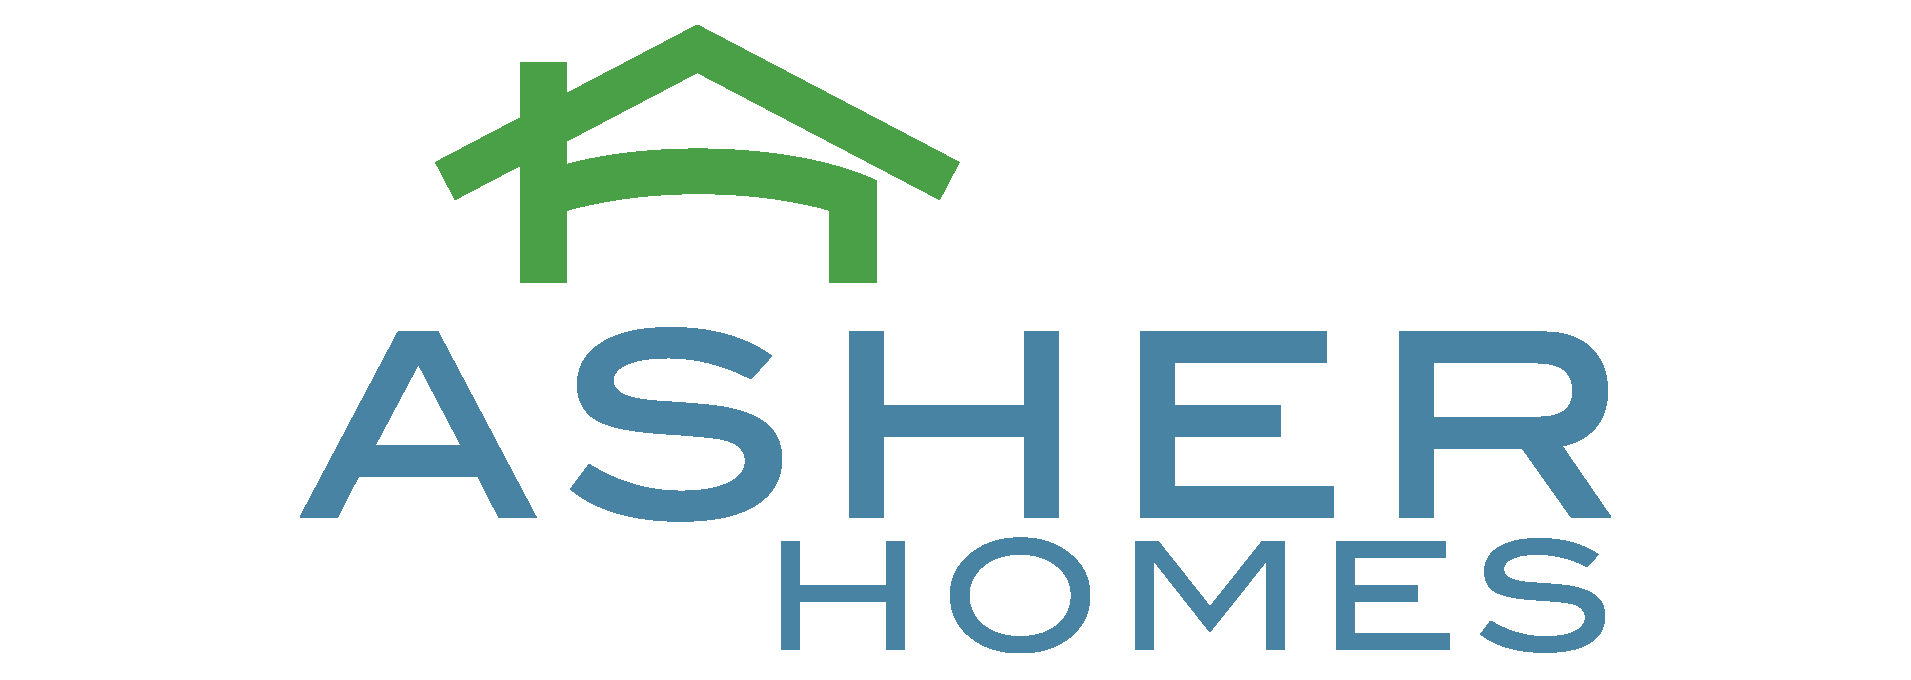 asher-homes-logo